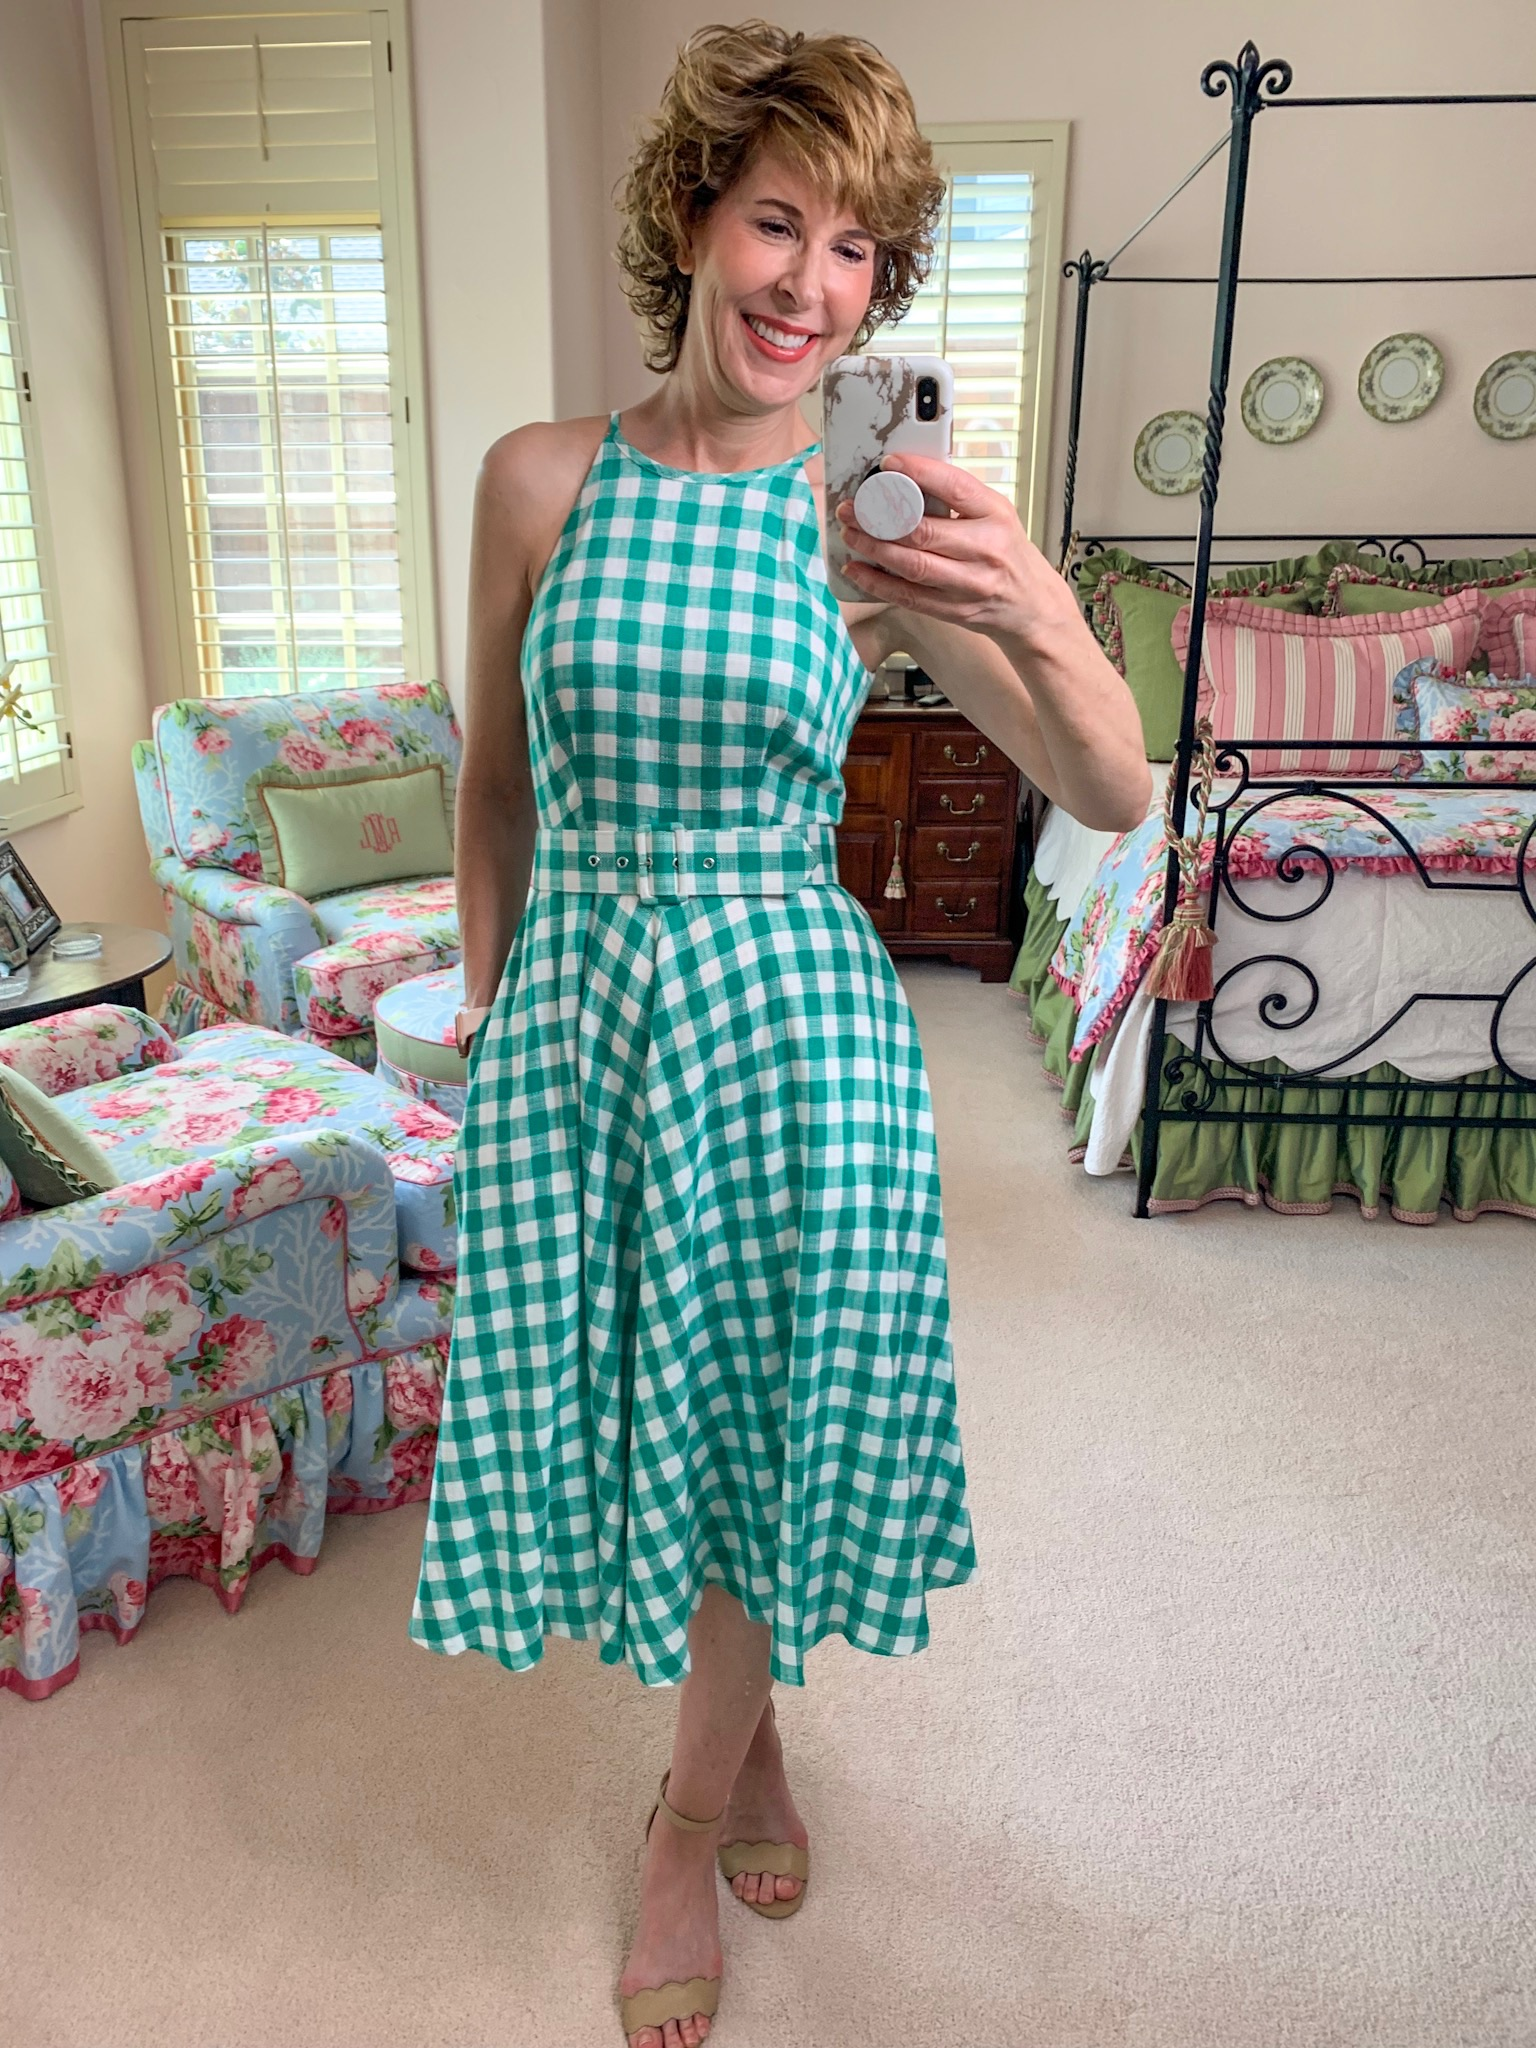 mirror selfie of woman in green and white gingham dress